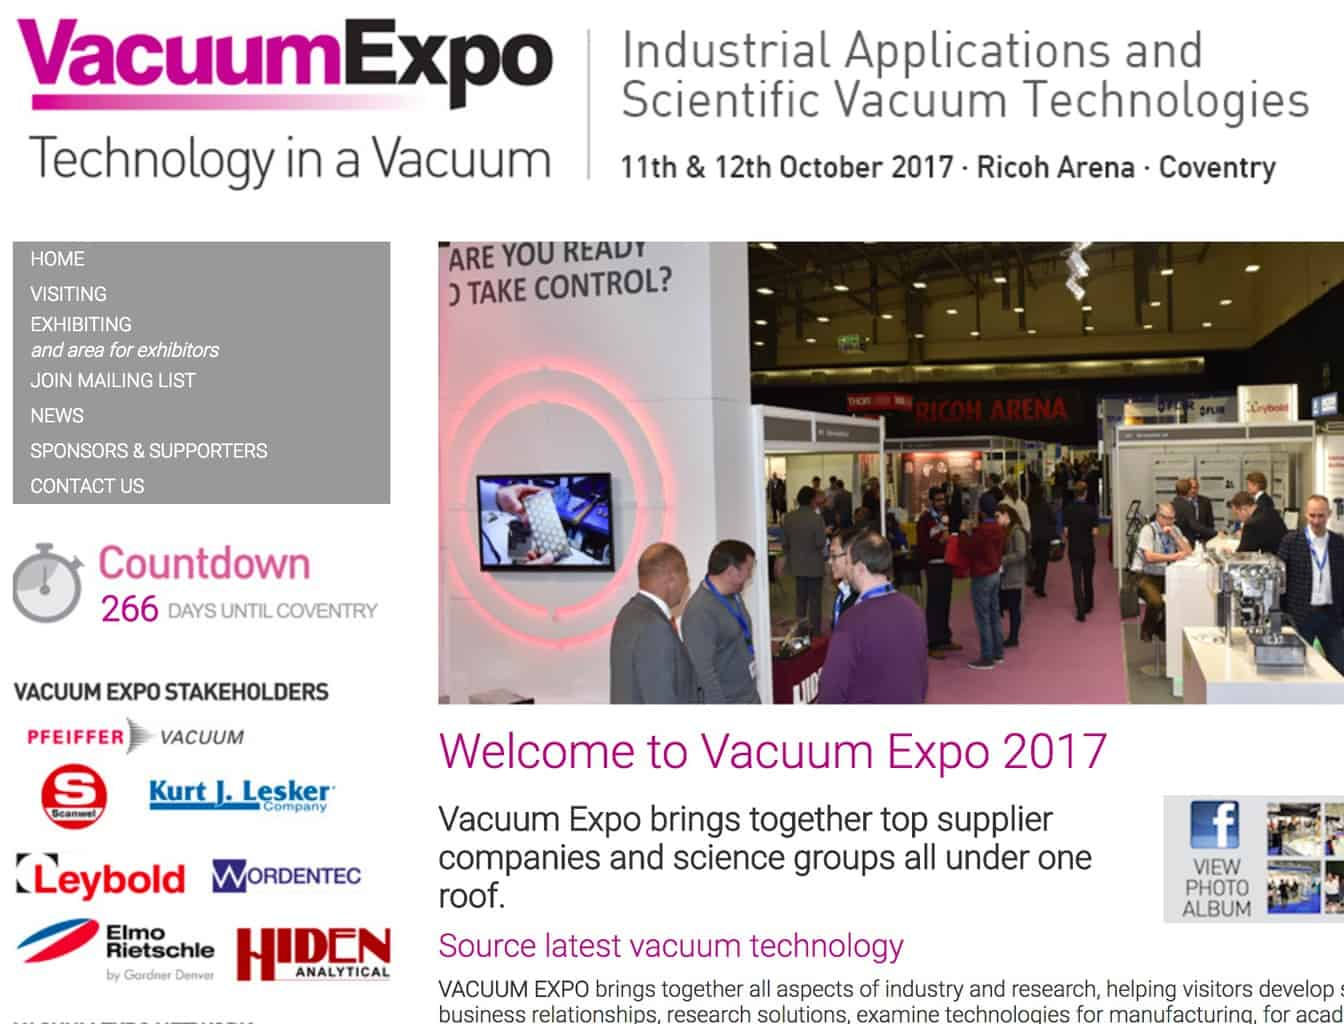 We are exhibiting at the Vacuum Expo 2017